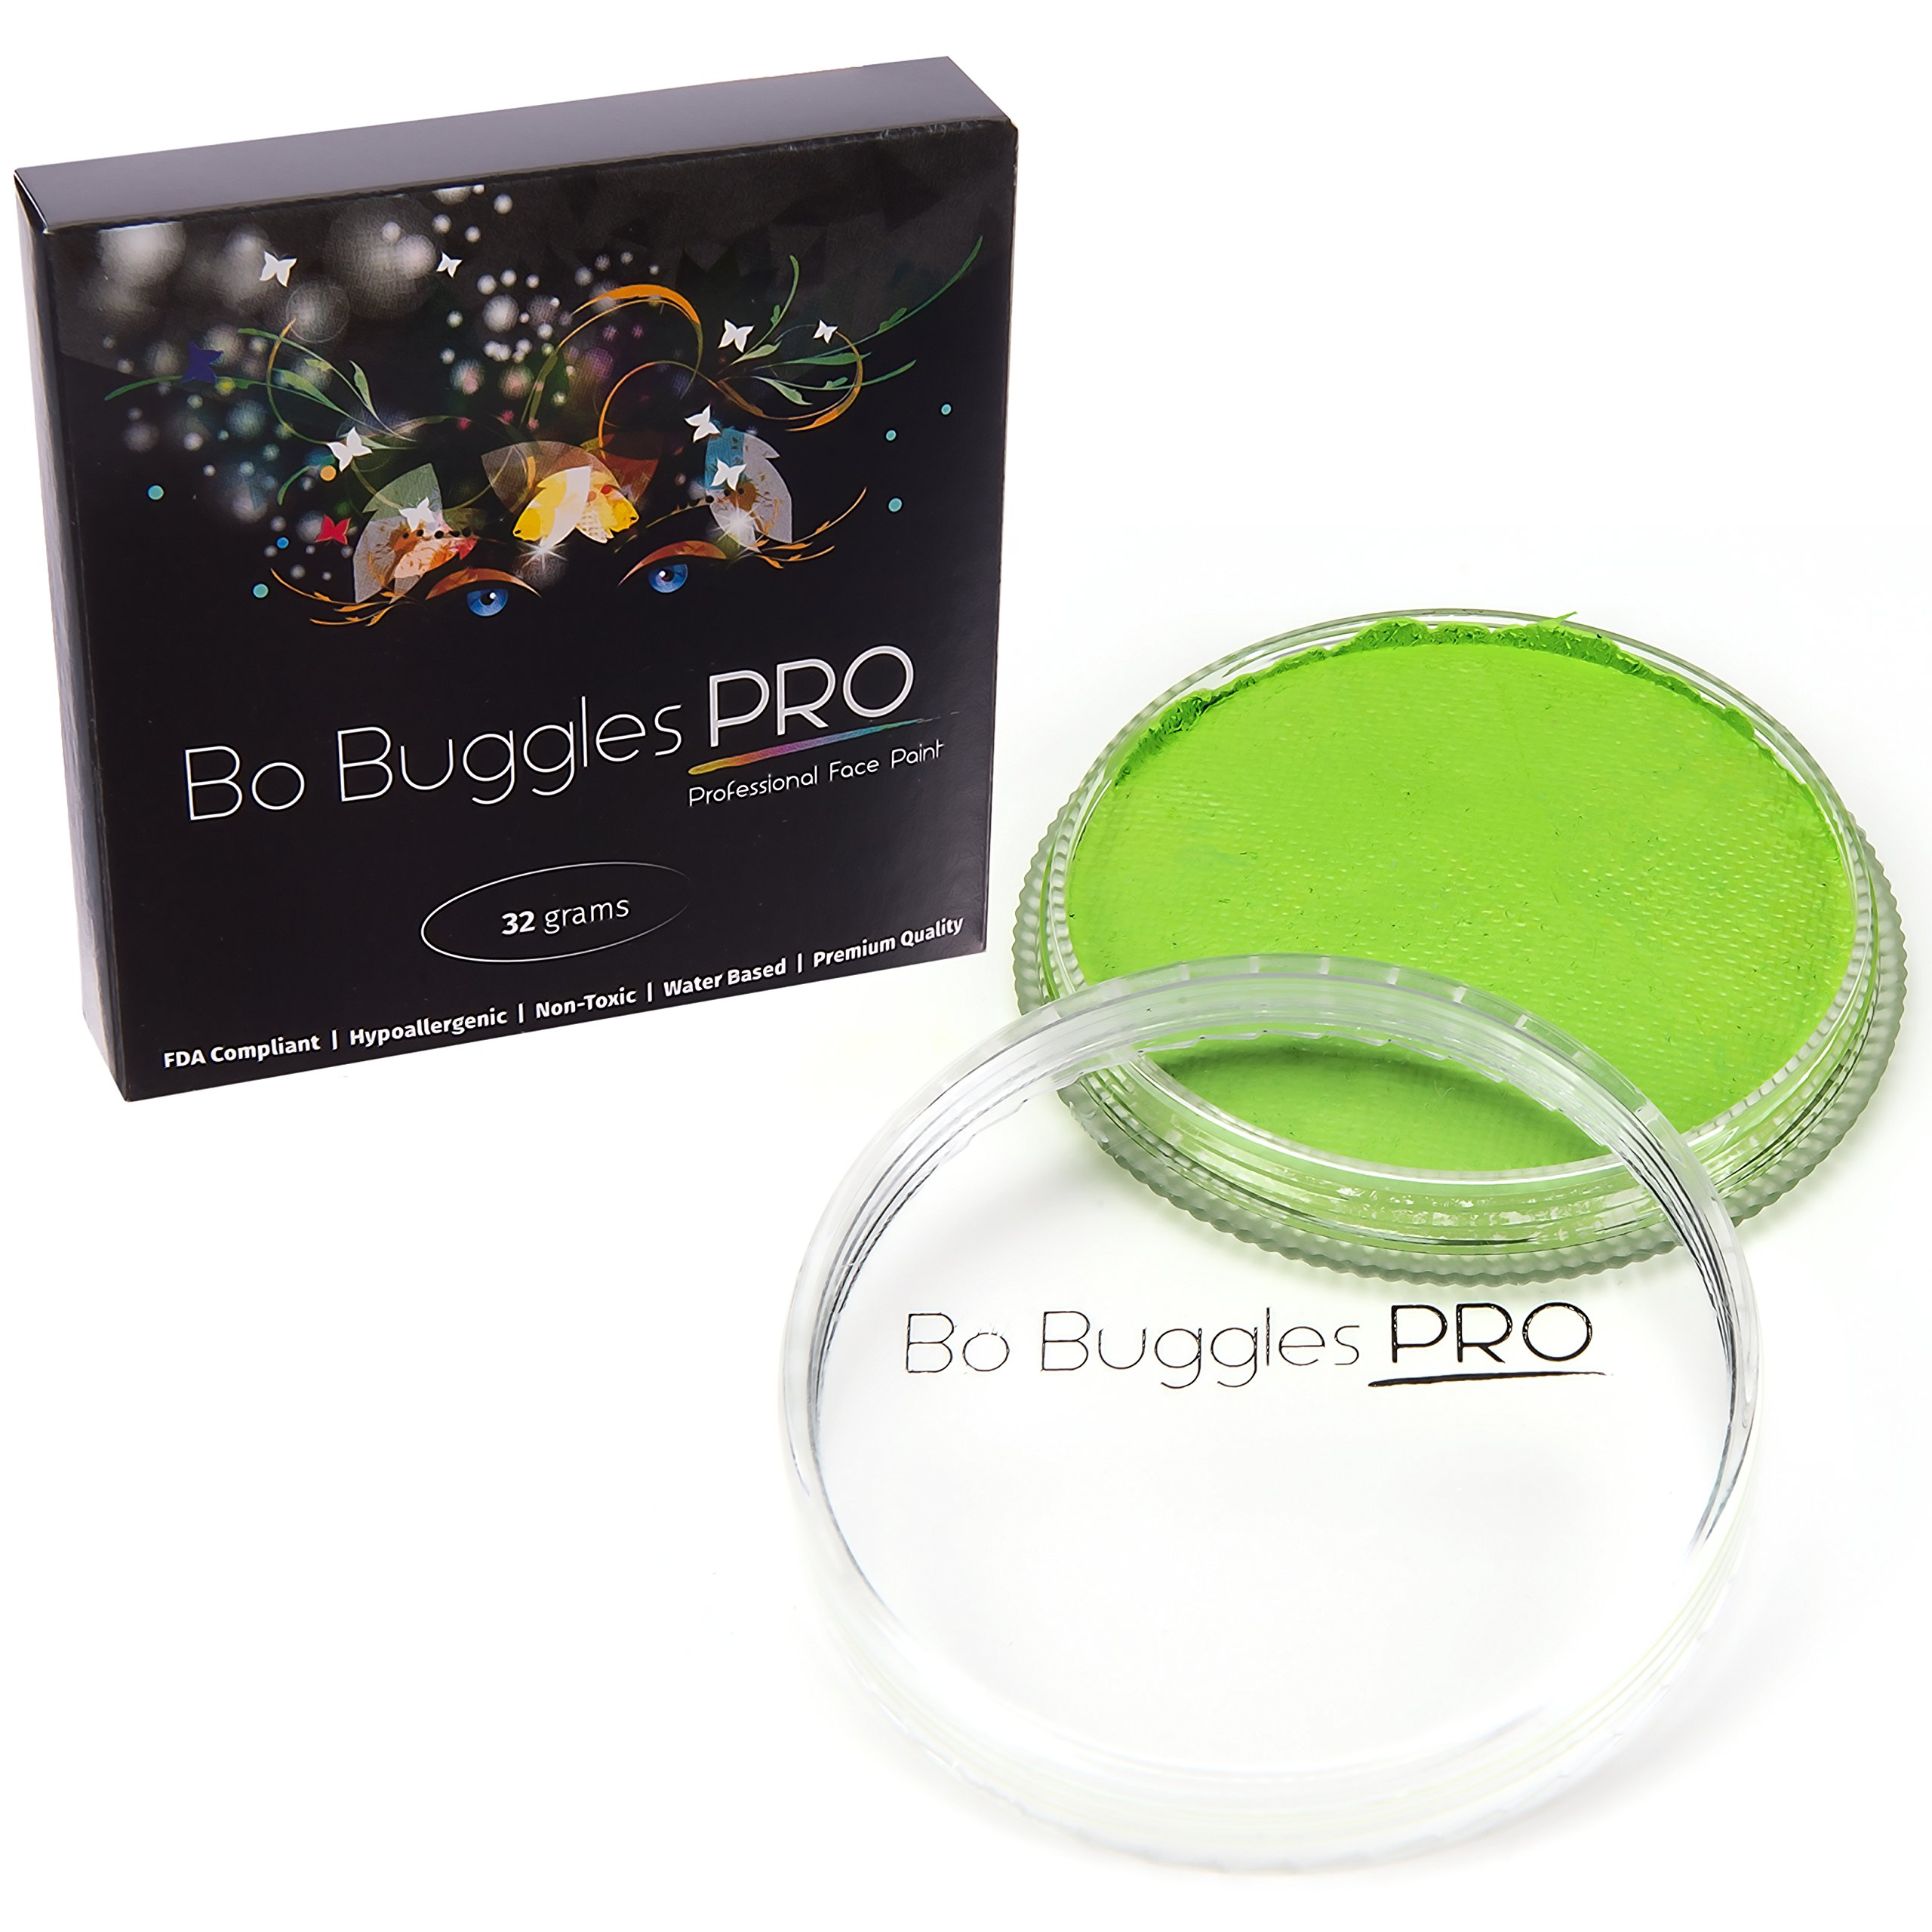 Bo Buggles Professional Lime 32g Face Paint, Classic Colors, Water Activated